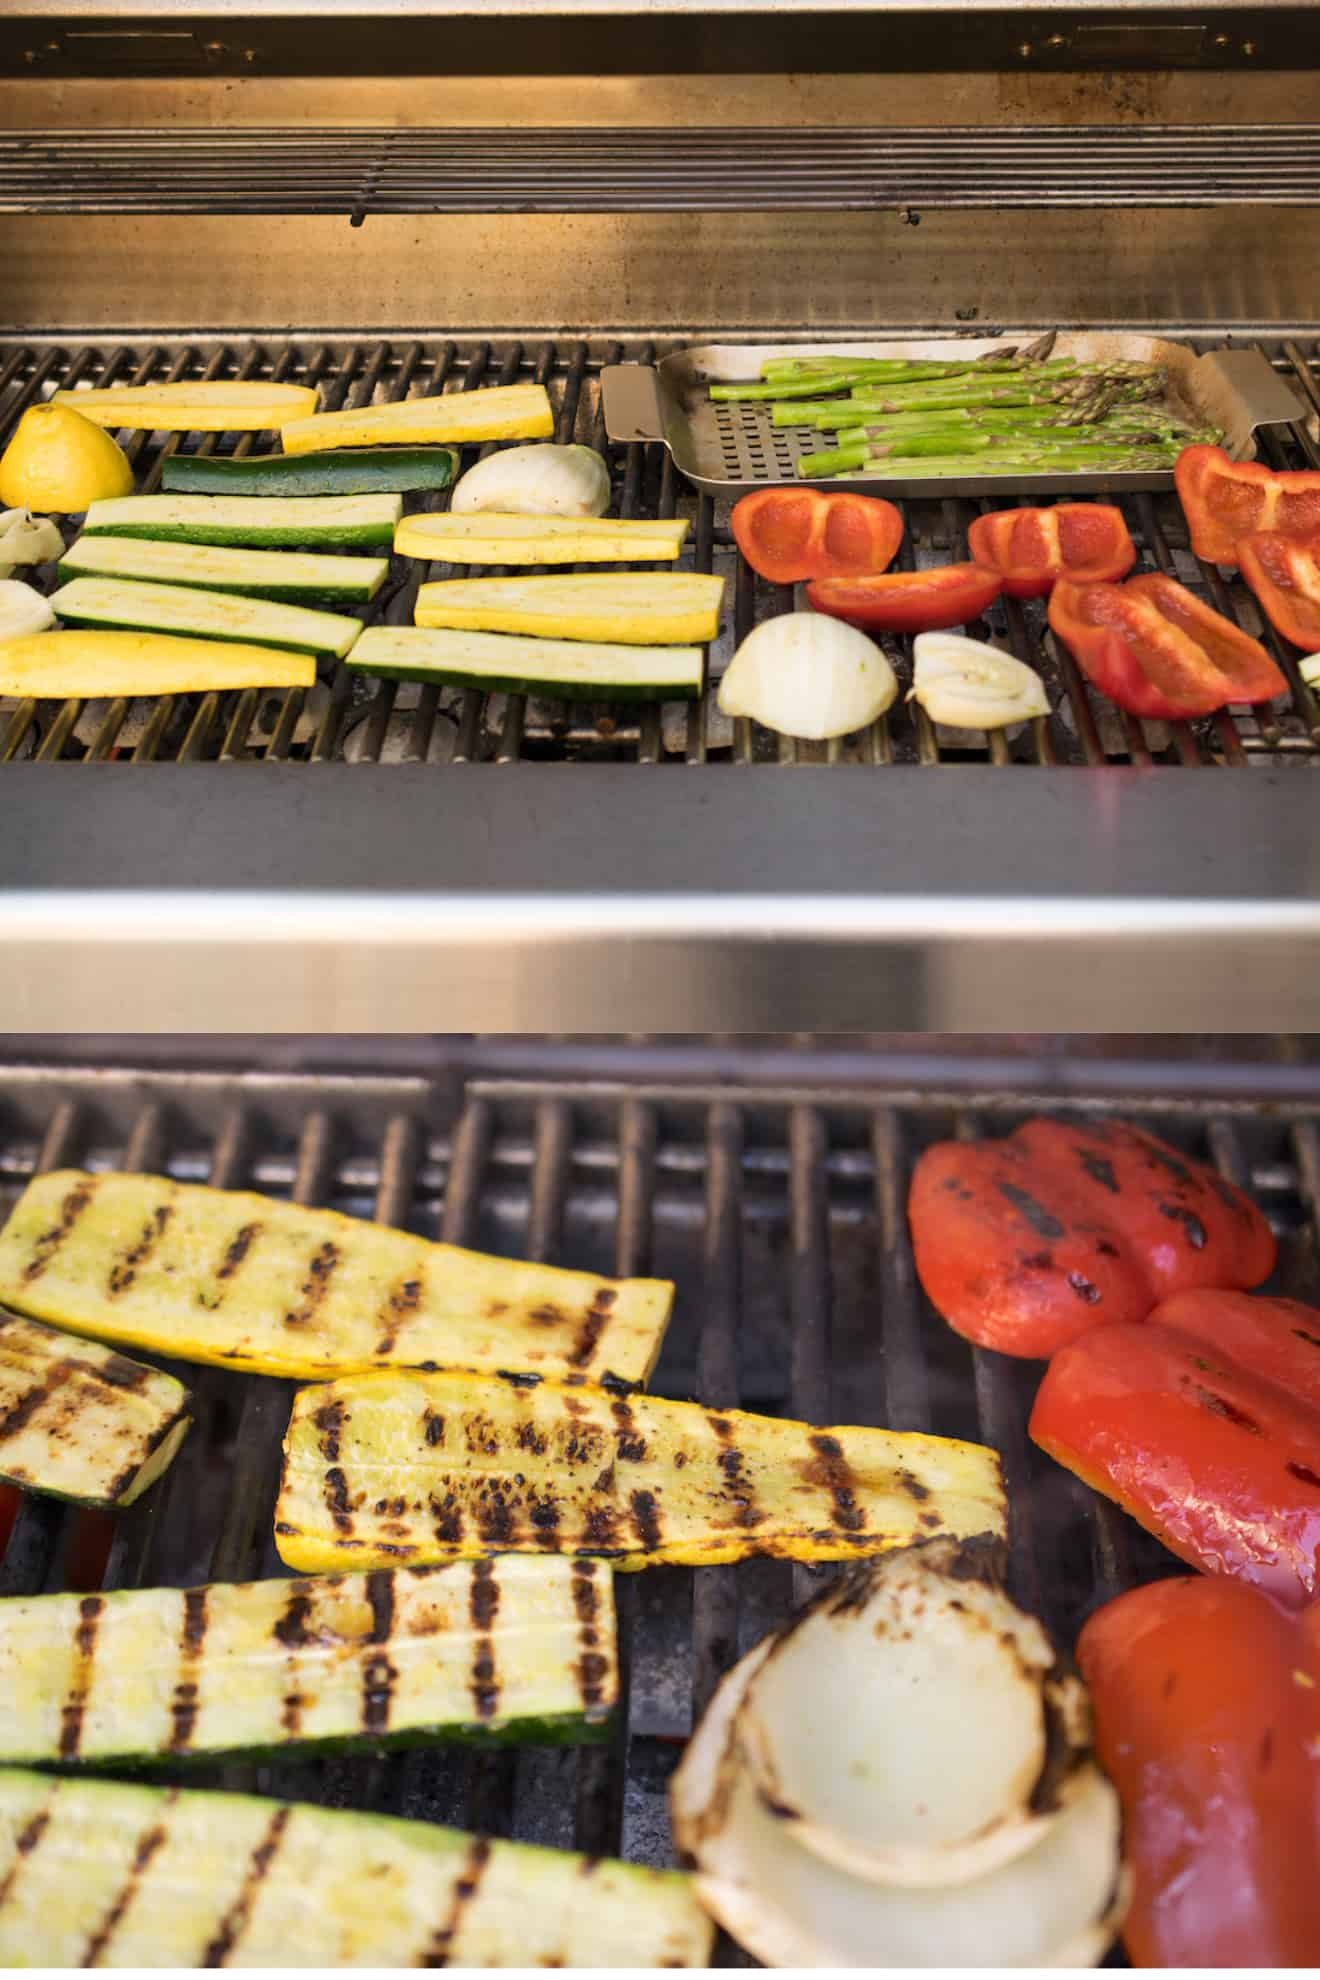 Zucchini/courgette, red peppers, asparagus and onions on the grill